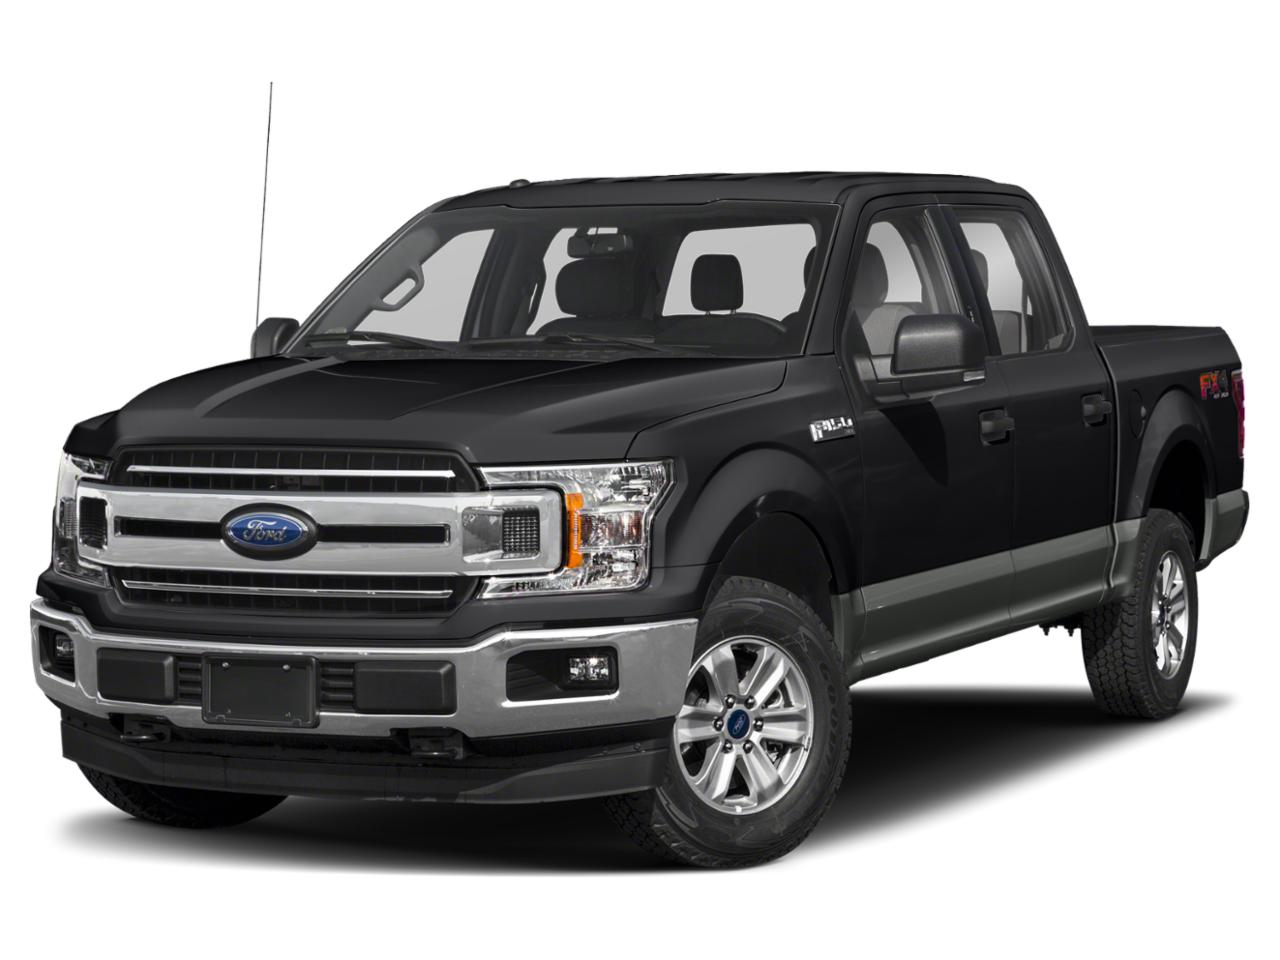 2020 Ford F-150 XLT Crew Cab Pickup Slide